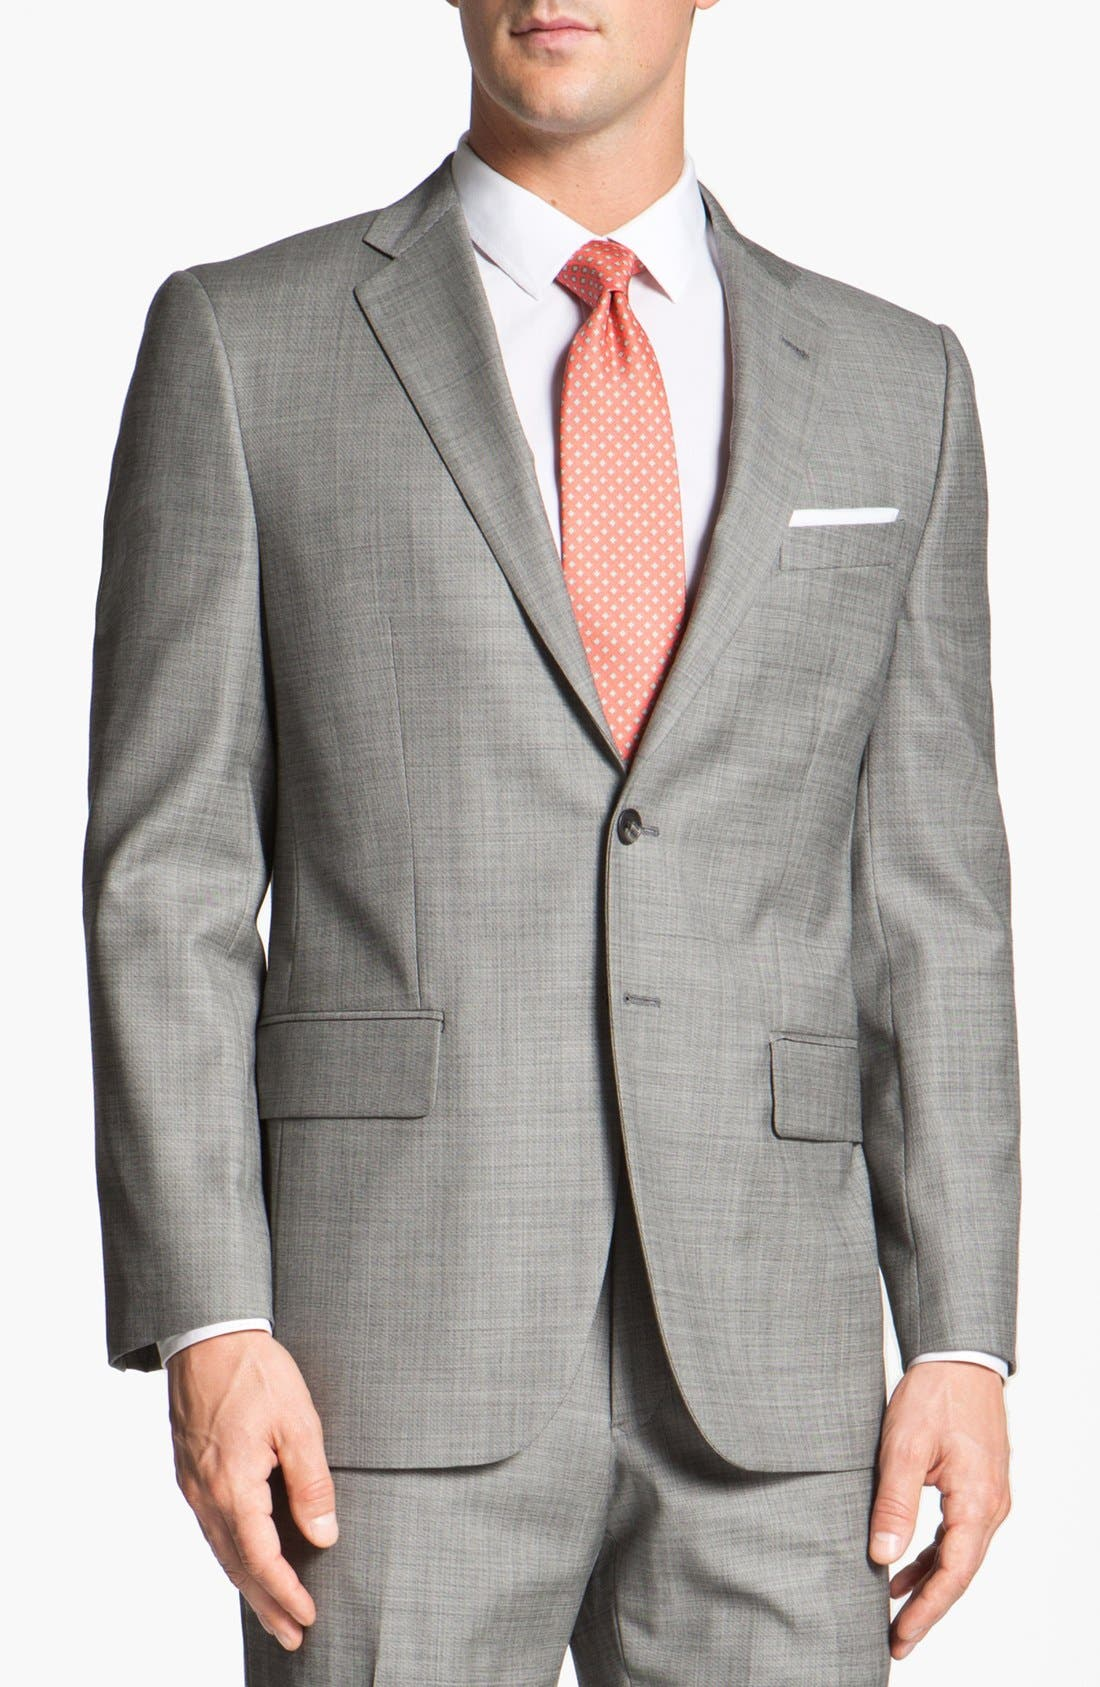 Main Image - Joseph Abboud 'Profile' Trim Fit Wool Suit (Online Only)